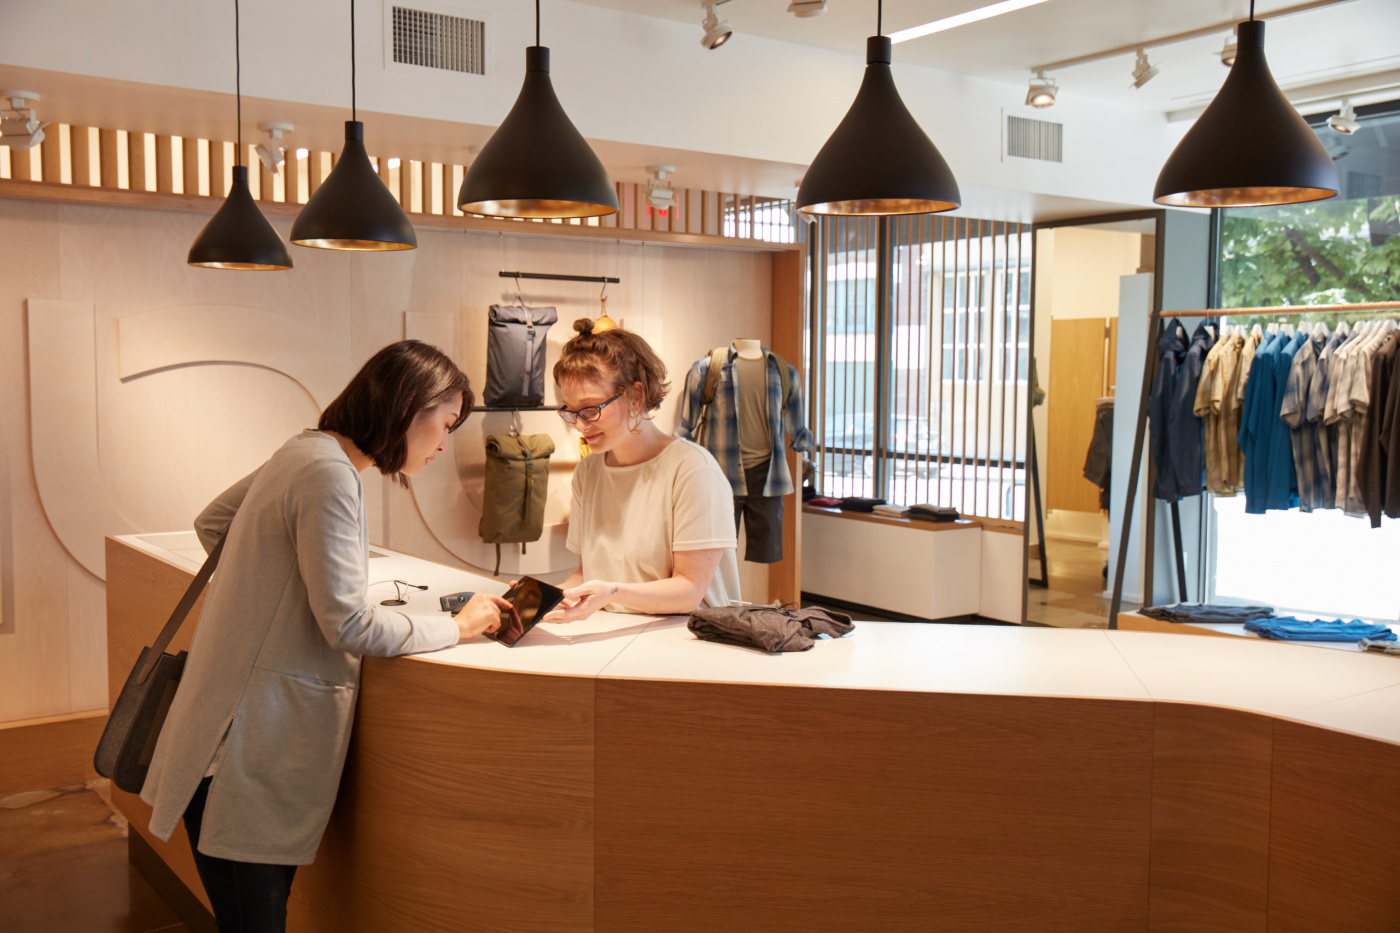 Retail Trends Playbook Excerpt: Key Initiatives To Transform Data Into Exceptional Customer Experience